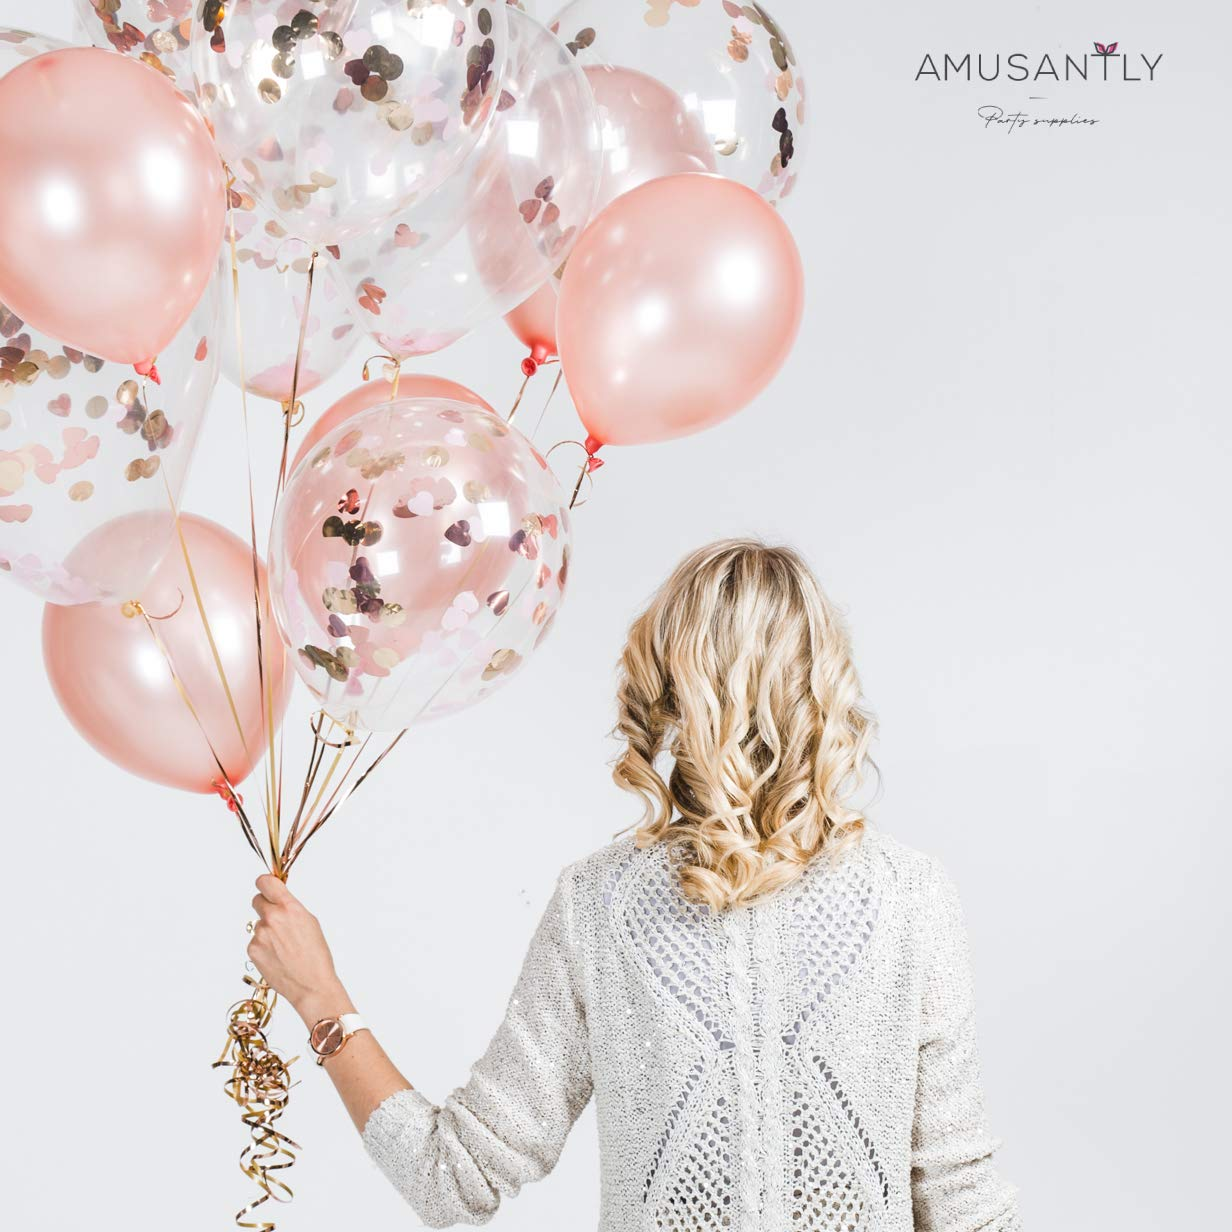 Elegant 12 Glitter Balloons for Decoration of Baby Girl or Bridal Shower Blush Birthday or Engagement Party AMUSANTLY Pink Champagne Confetti Balloons /& Rose Gold Balloons 18pcs, 65ft Ribbon